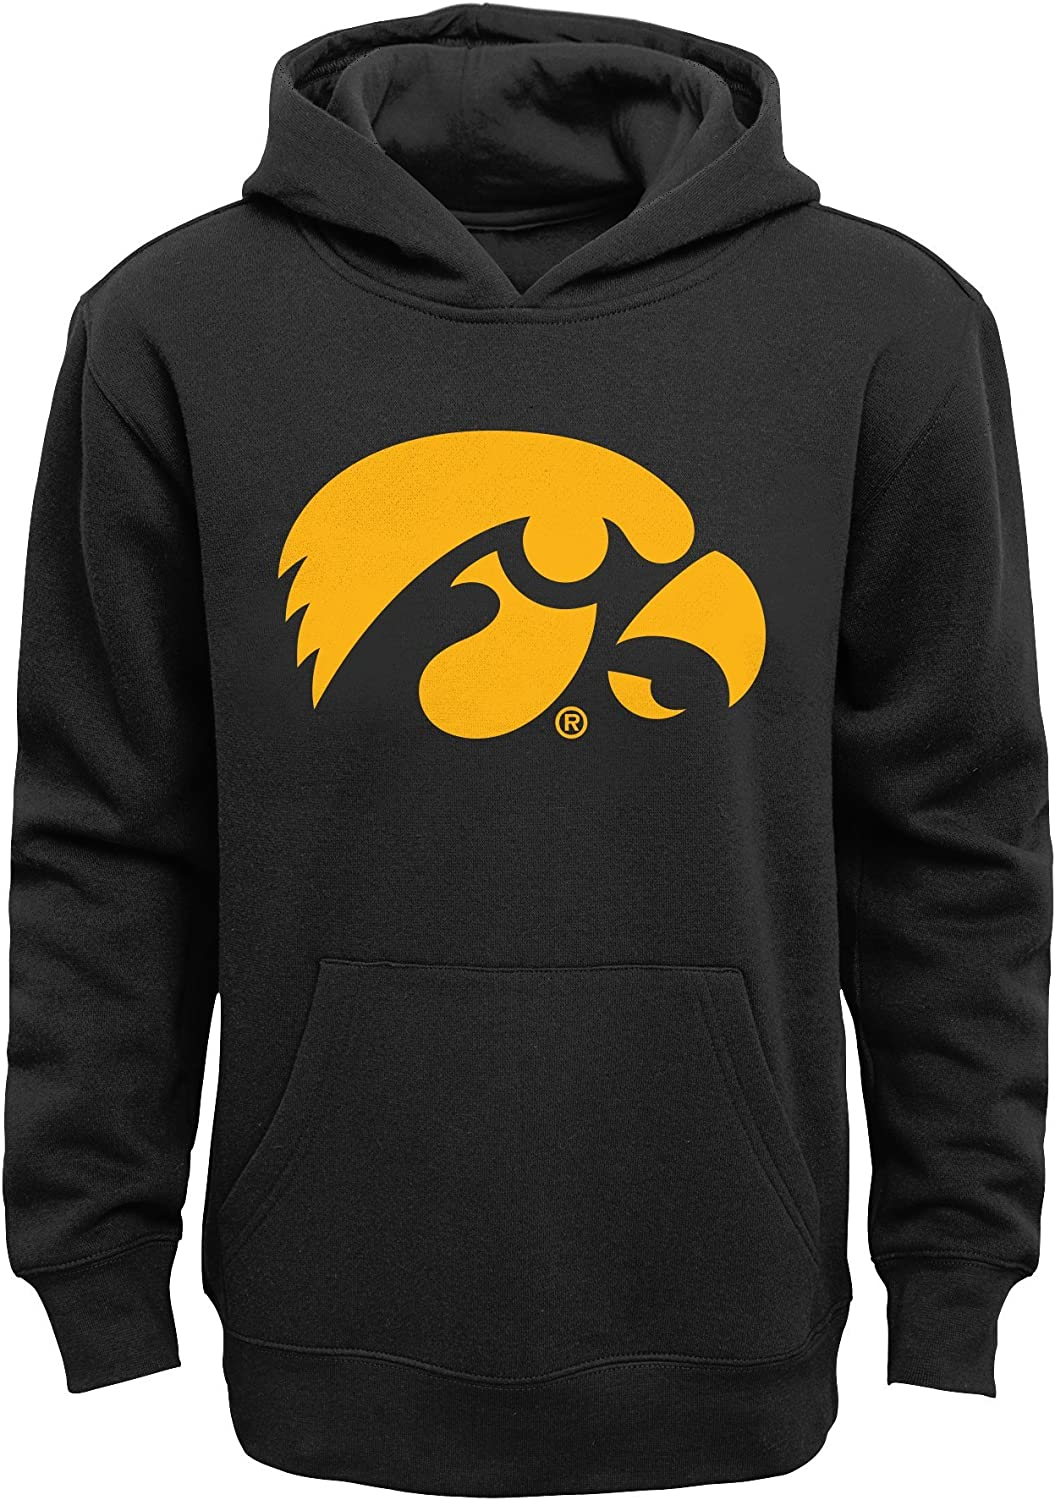 5-6 Black NCAA by Outerstuff NCAA Iowa Hawkeyes Kids Primary Logo Fleece Hoodie Kids Medium